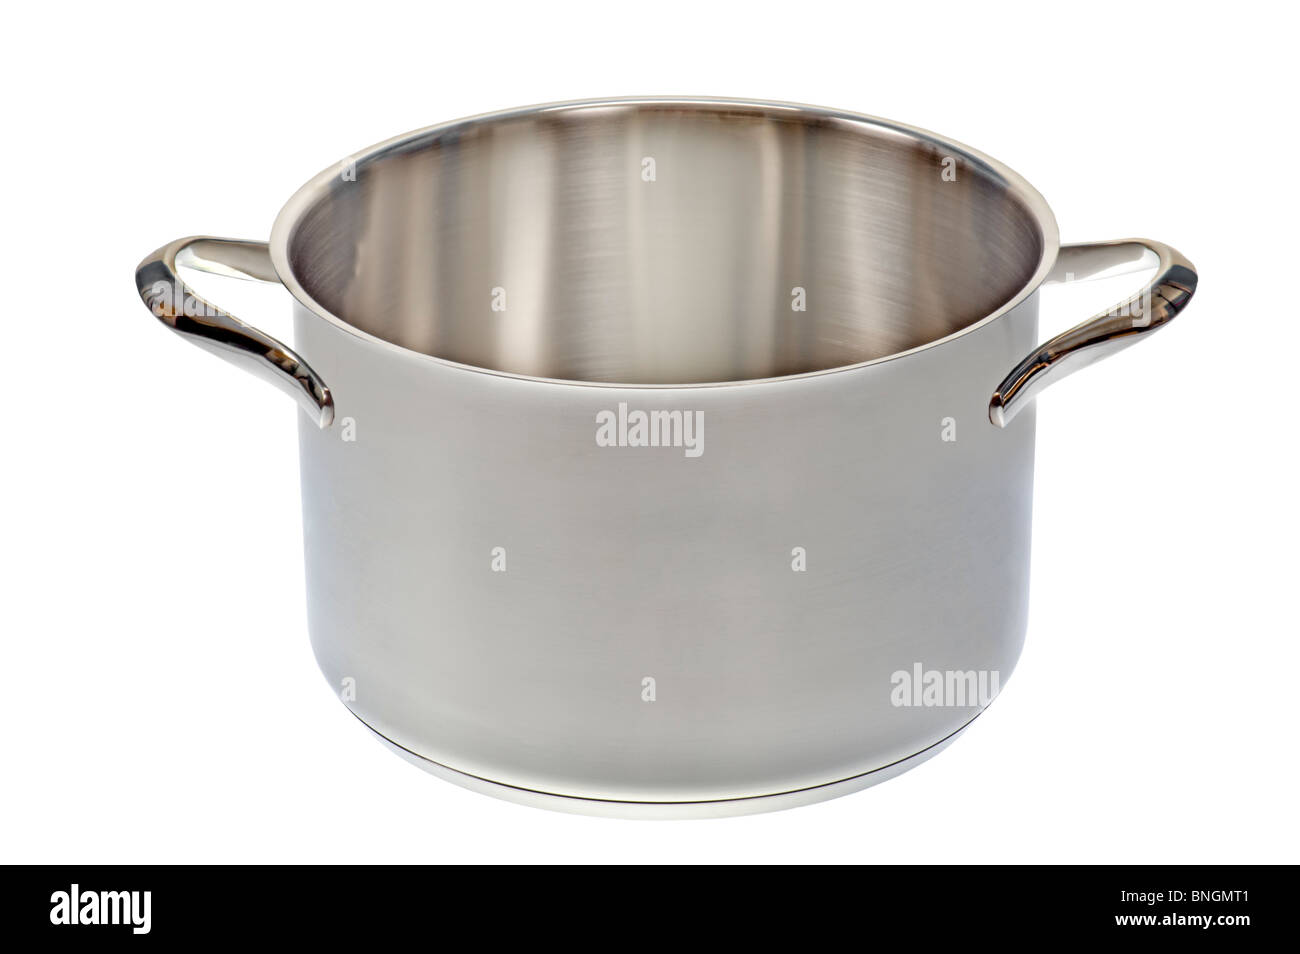 open cooking pot saucepan cookware cook ware cromargan high-grade steel special steel stainless corrosion-resistant - Stock Image